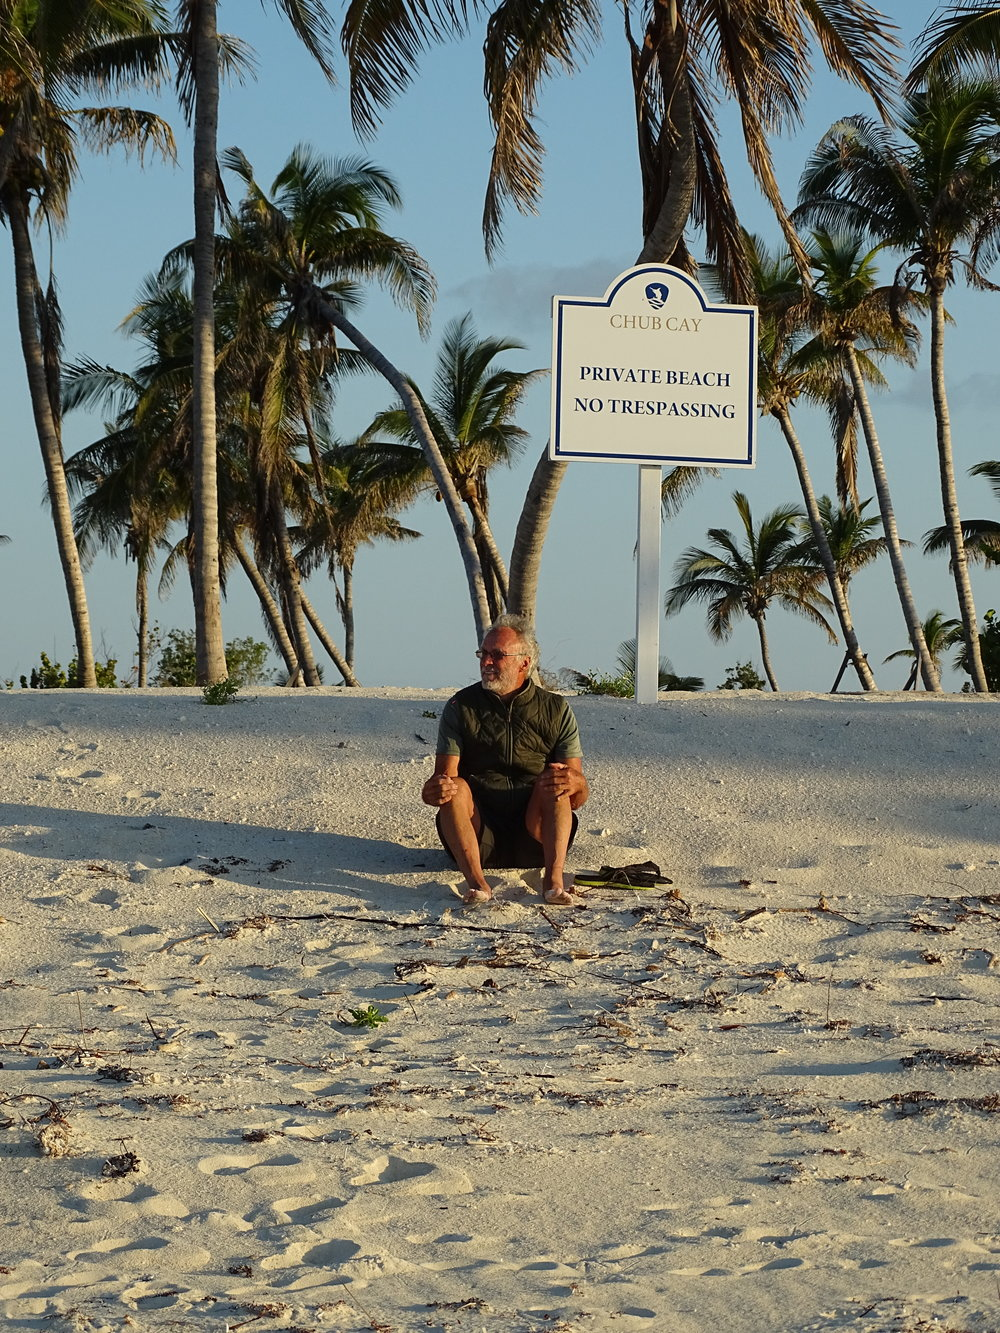 Chub Cay Beach sign